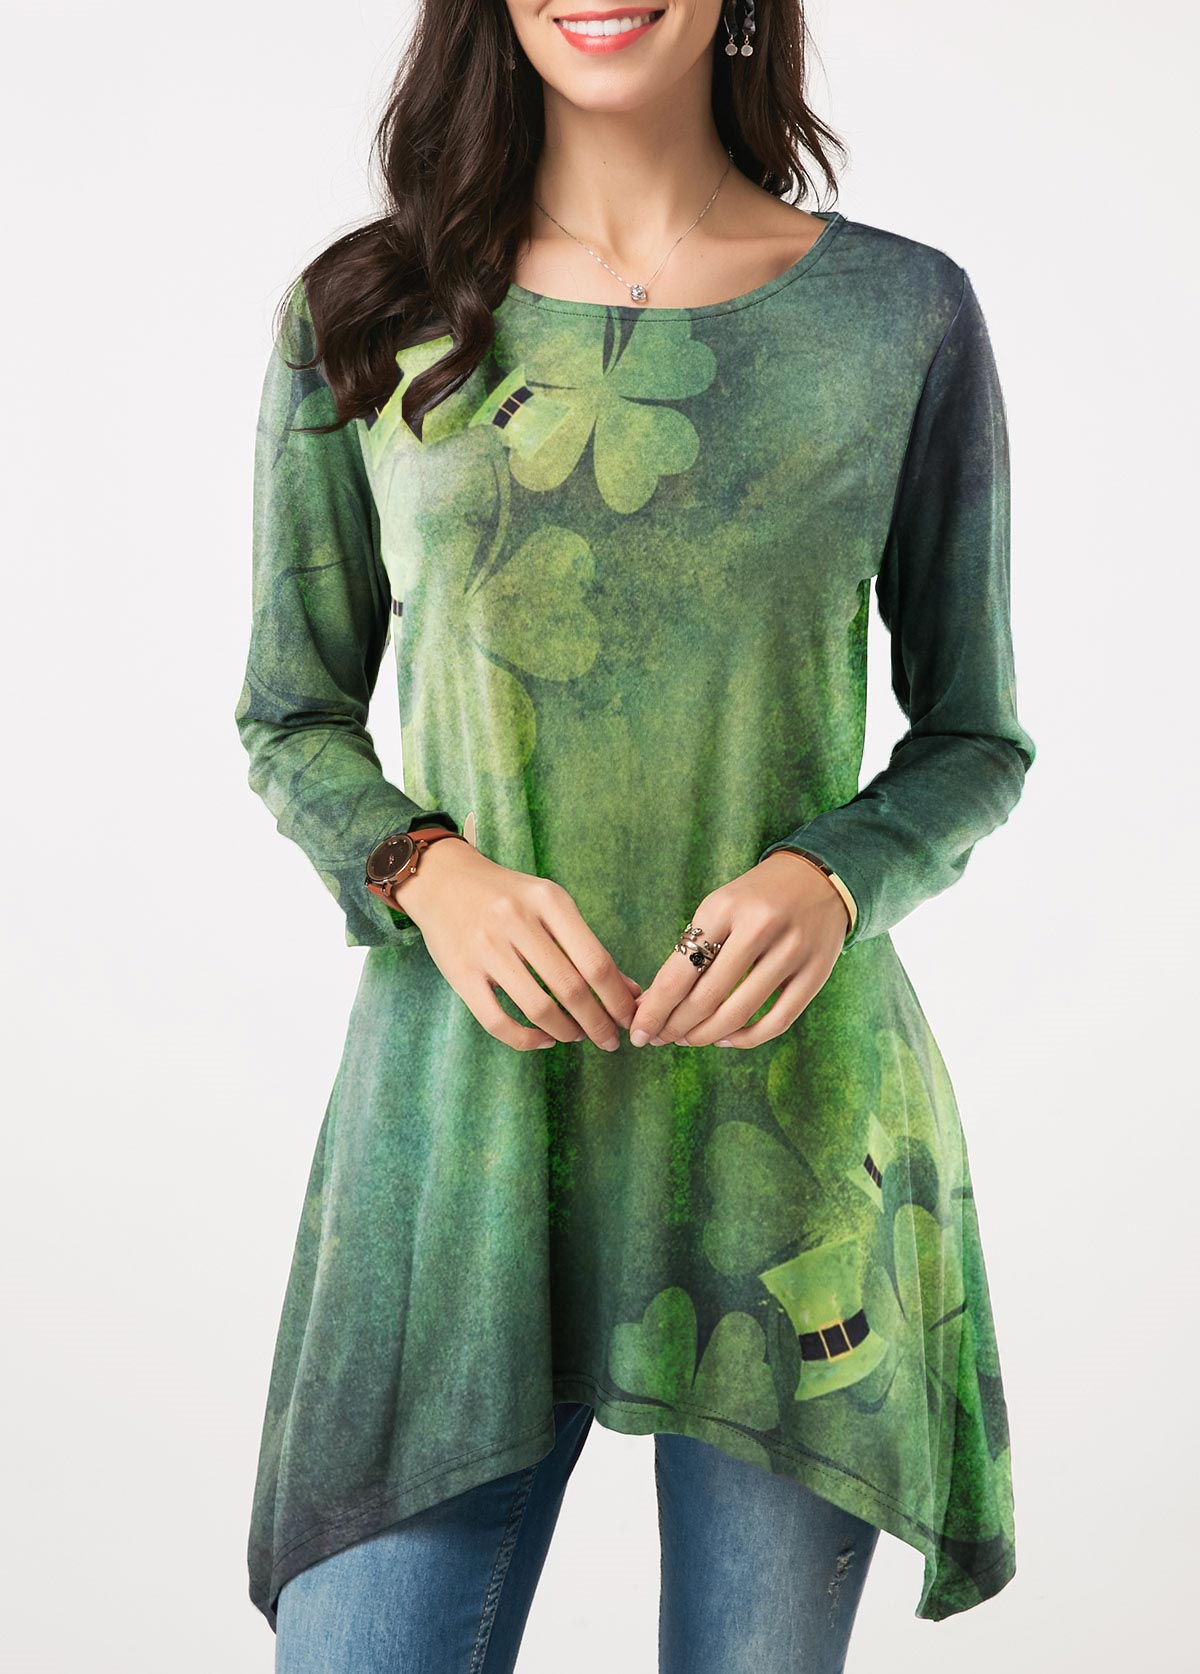 Clover Print Asymmetric Hem ST Patricks Day T Shirt